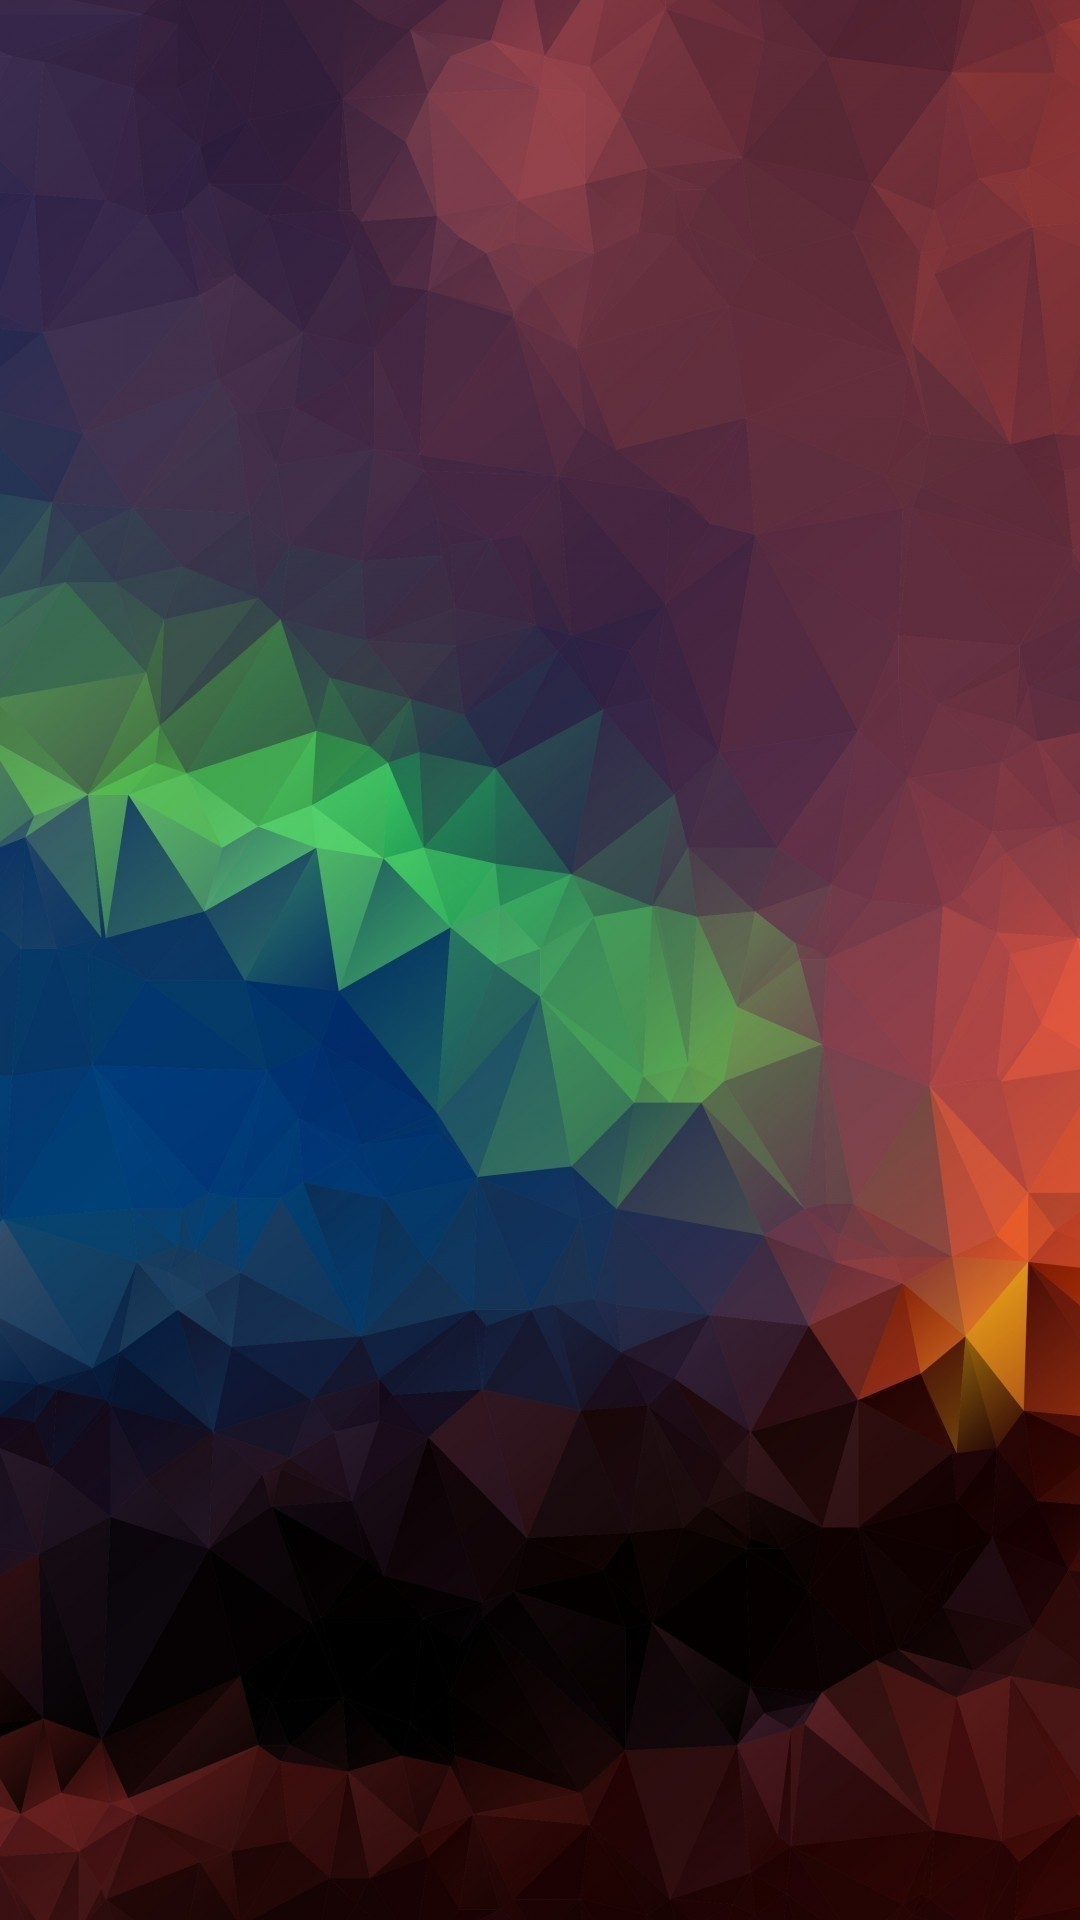 Colorful hd wallpaper for iphone